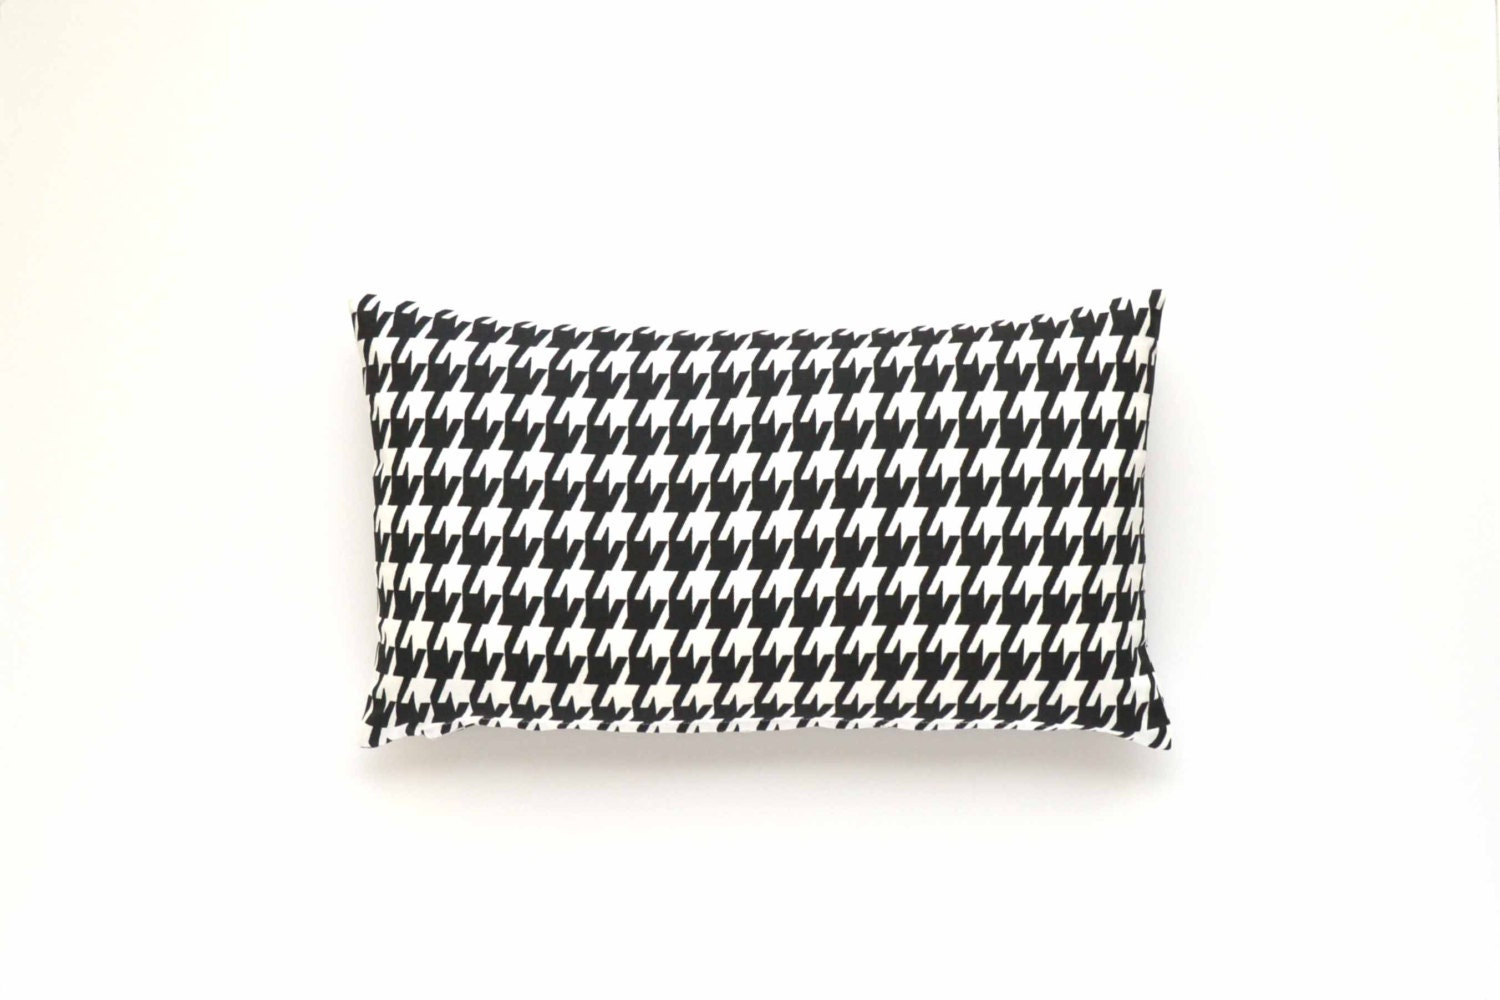 Black And White Houndstooth Throw Pillows : Decorative Houndstooth Lumbar Pillow Cover - Black and White - 12 x 20